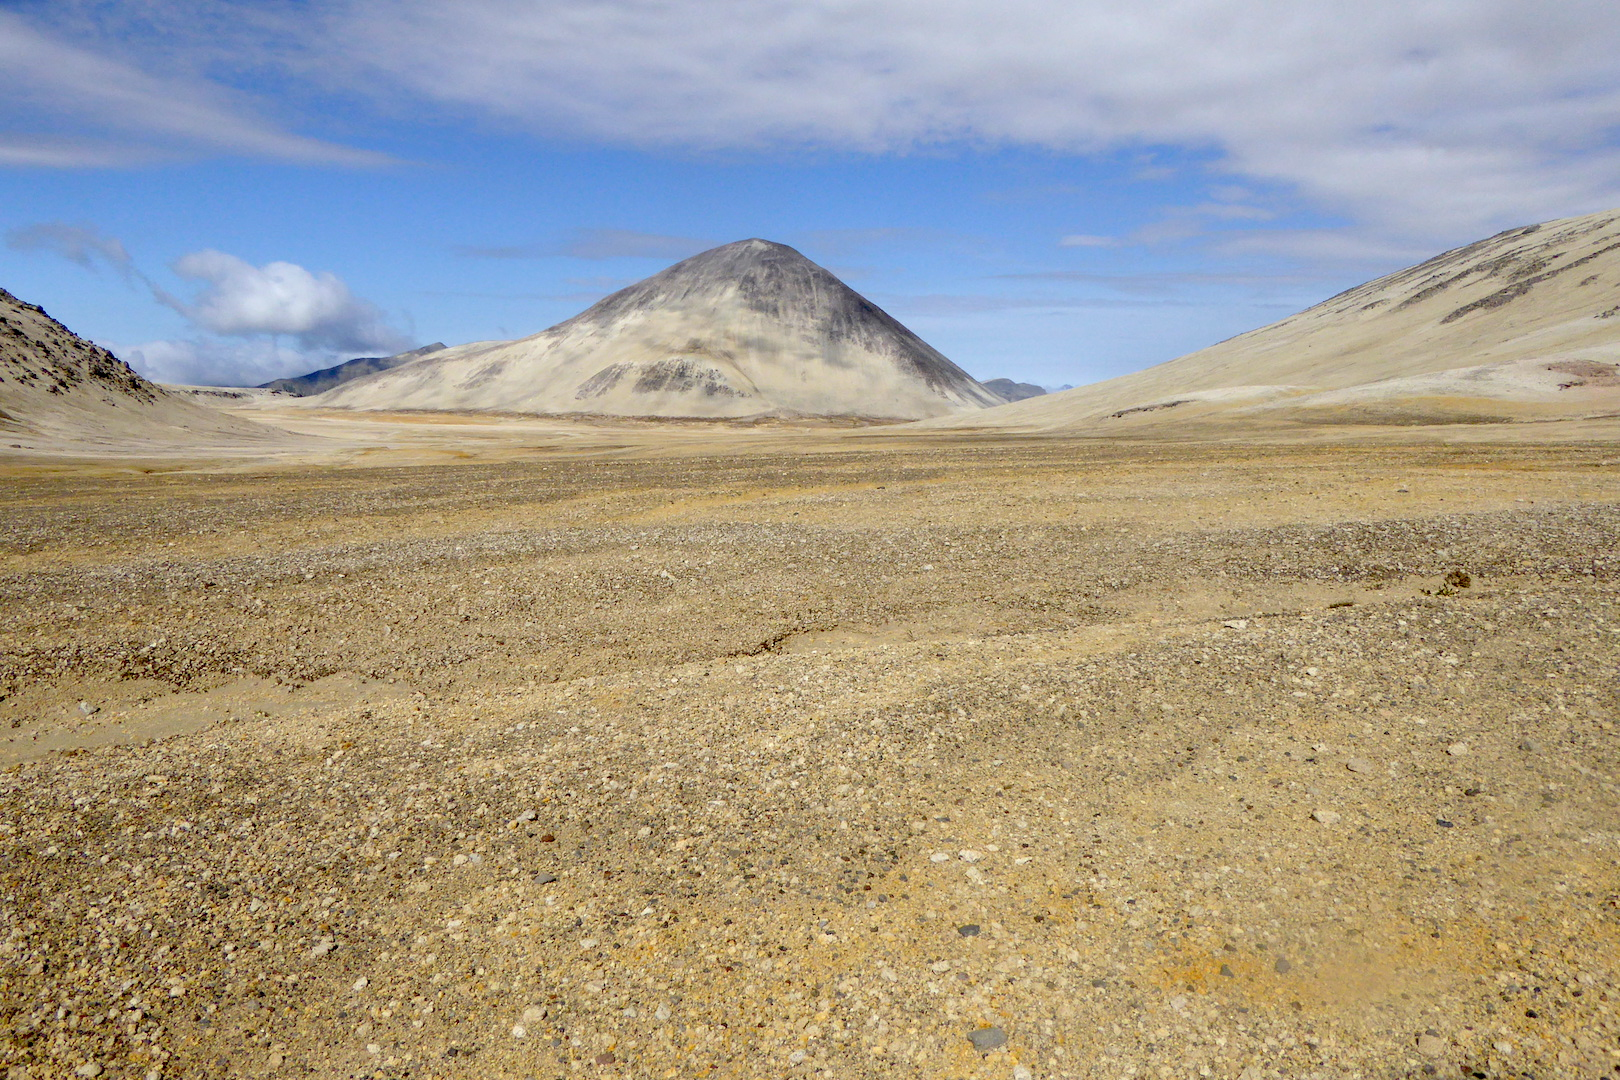 ash and pumice covered plain with hills